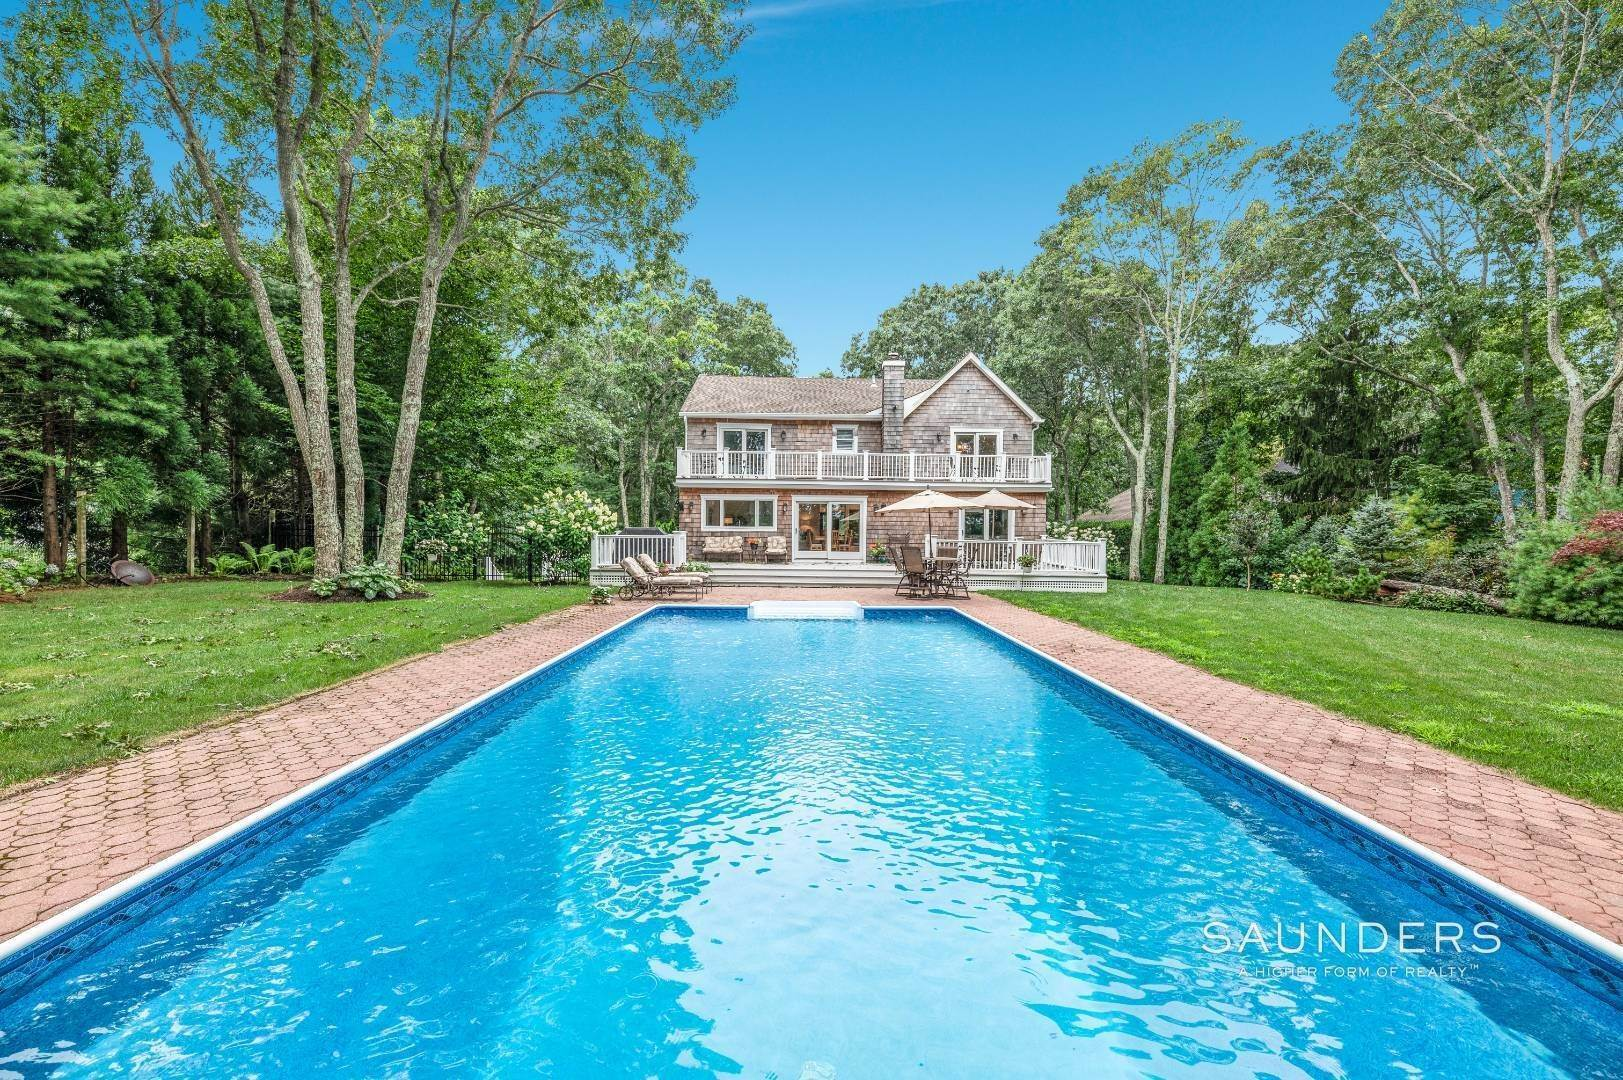 Single Family Homes for Sale at Light-Filled Renovated Postmodern Near East Hampton Village 8 Anvil Court, East Hampton, East Hampton Town, NY 11937